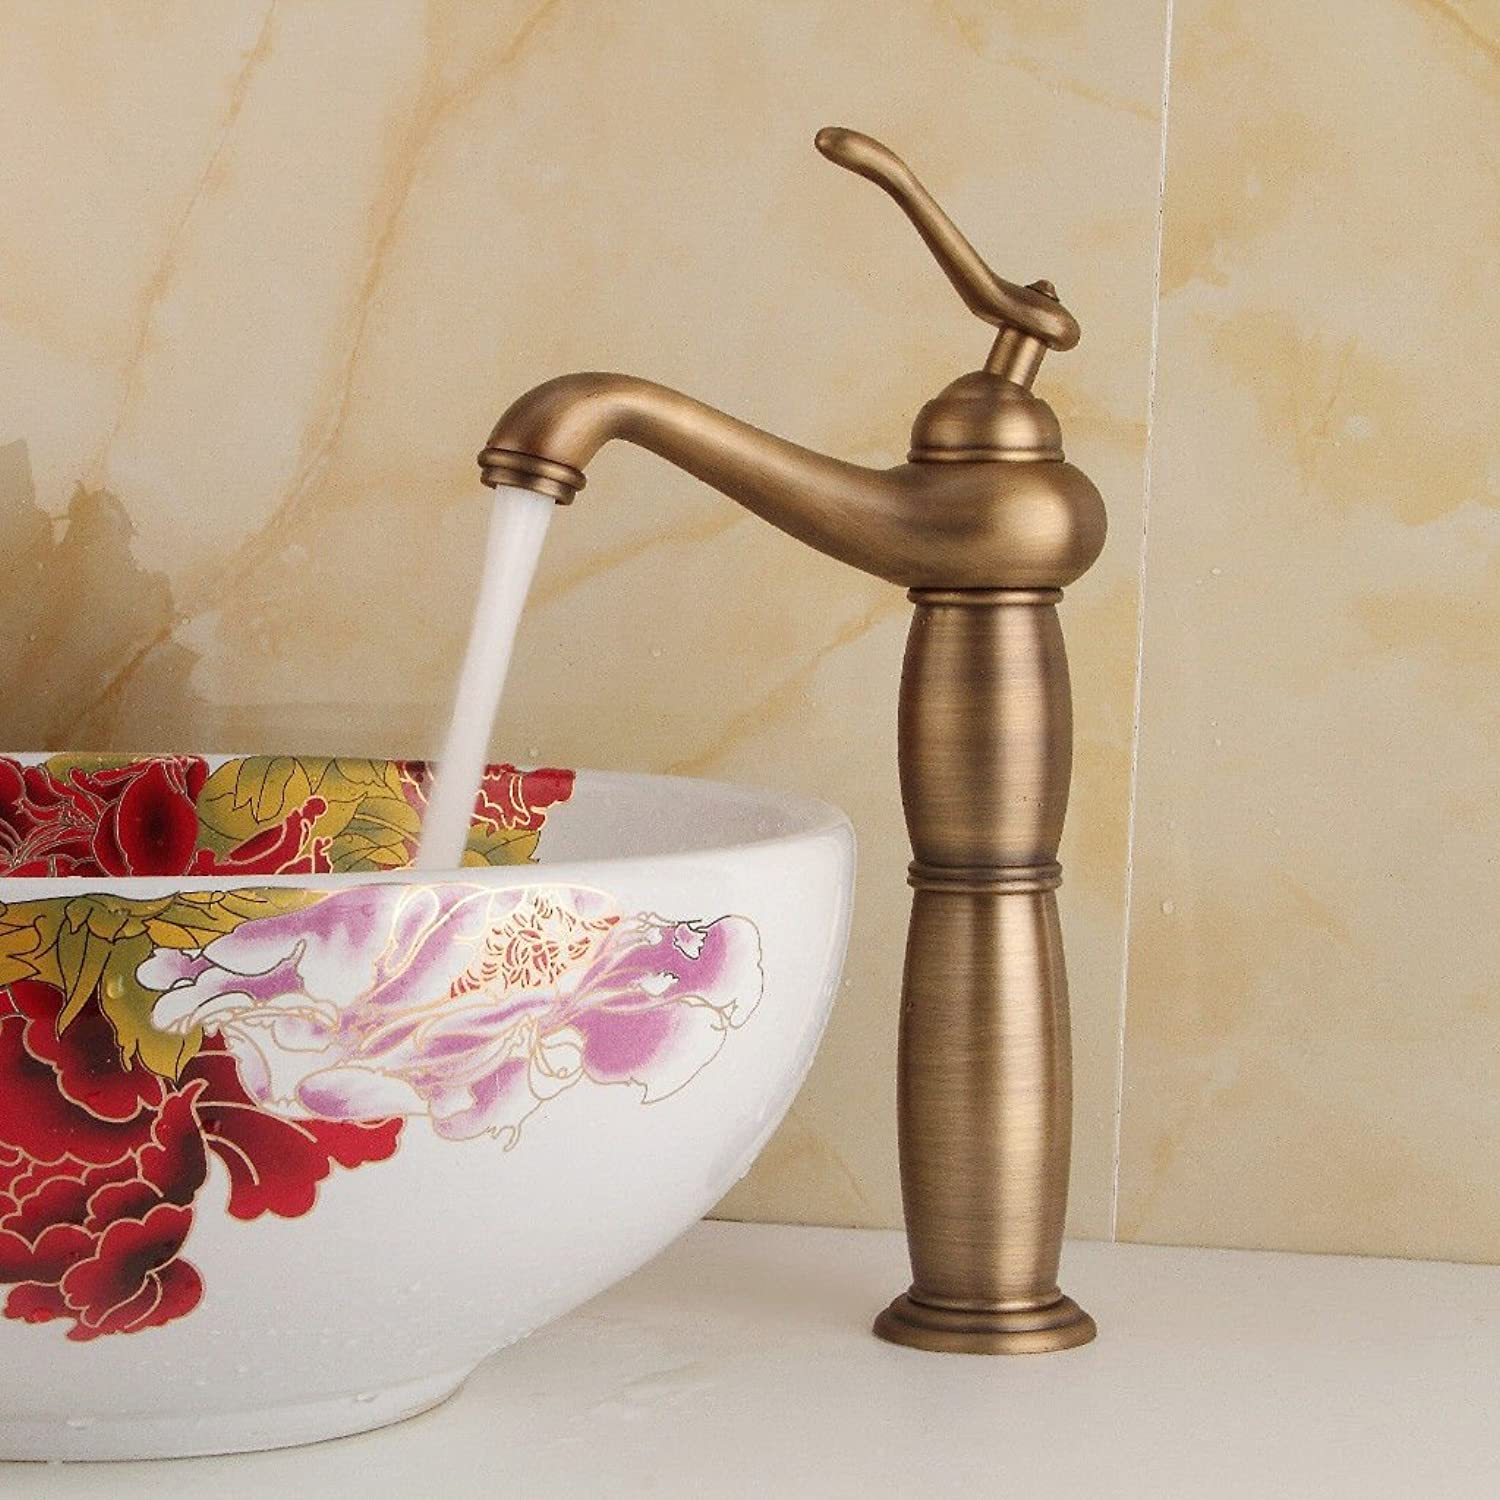 AQMMi Basin Taps Bathroom Sink Faucet Hot and Cold Water Brass Retro Bathroom Sink Faucet Basin Mixer Tap